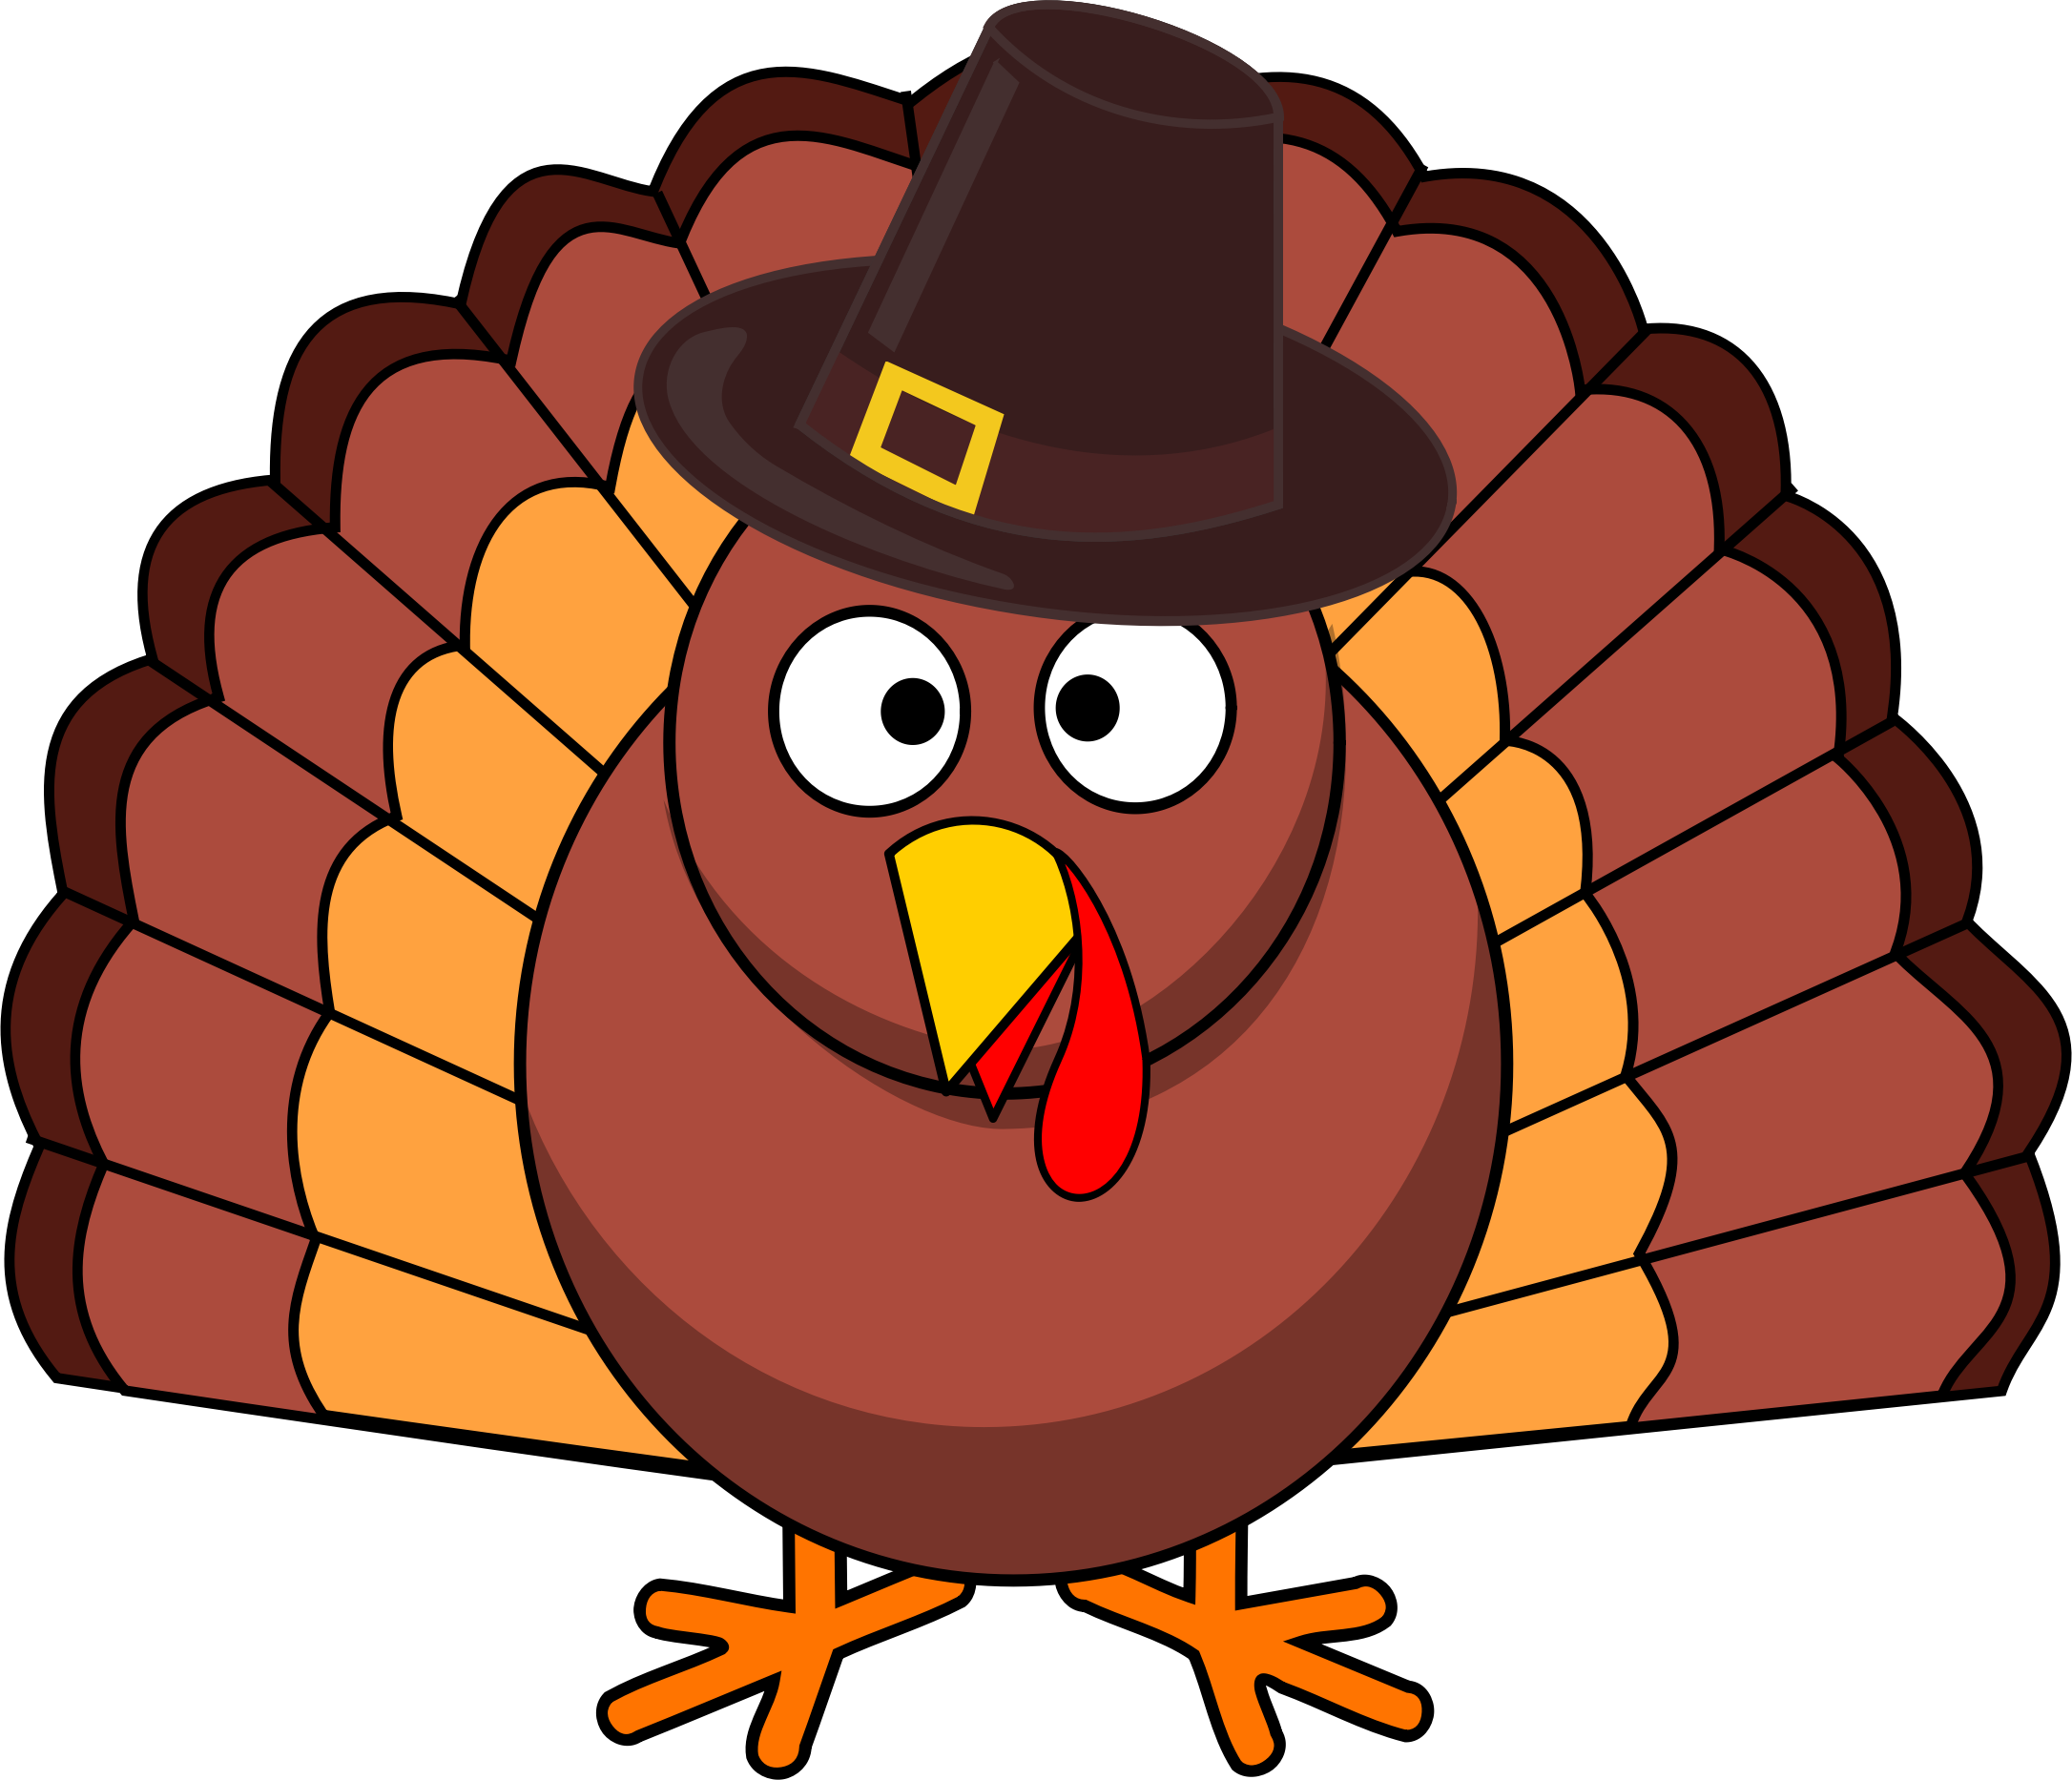 svg royalty free library Thanksgiving Turkey Clipart at GetDrawings